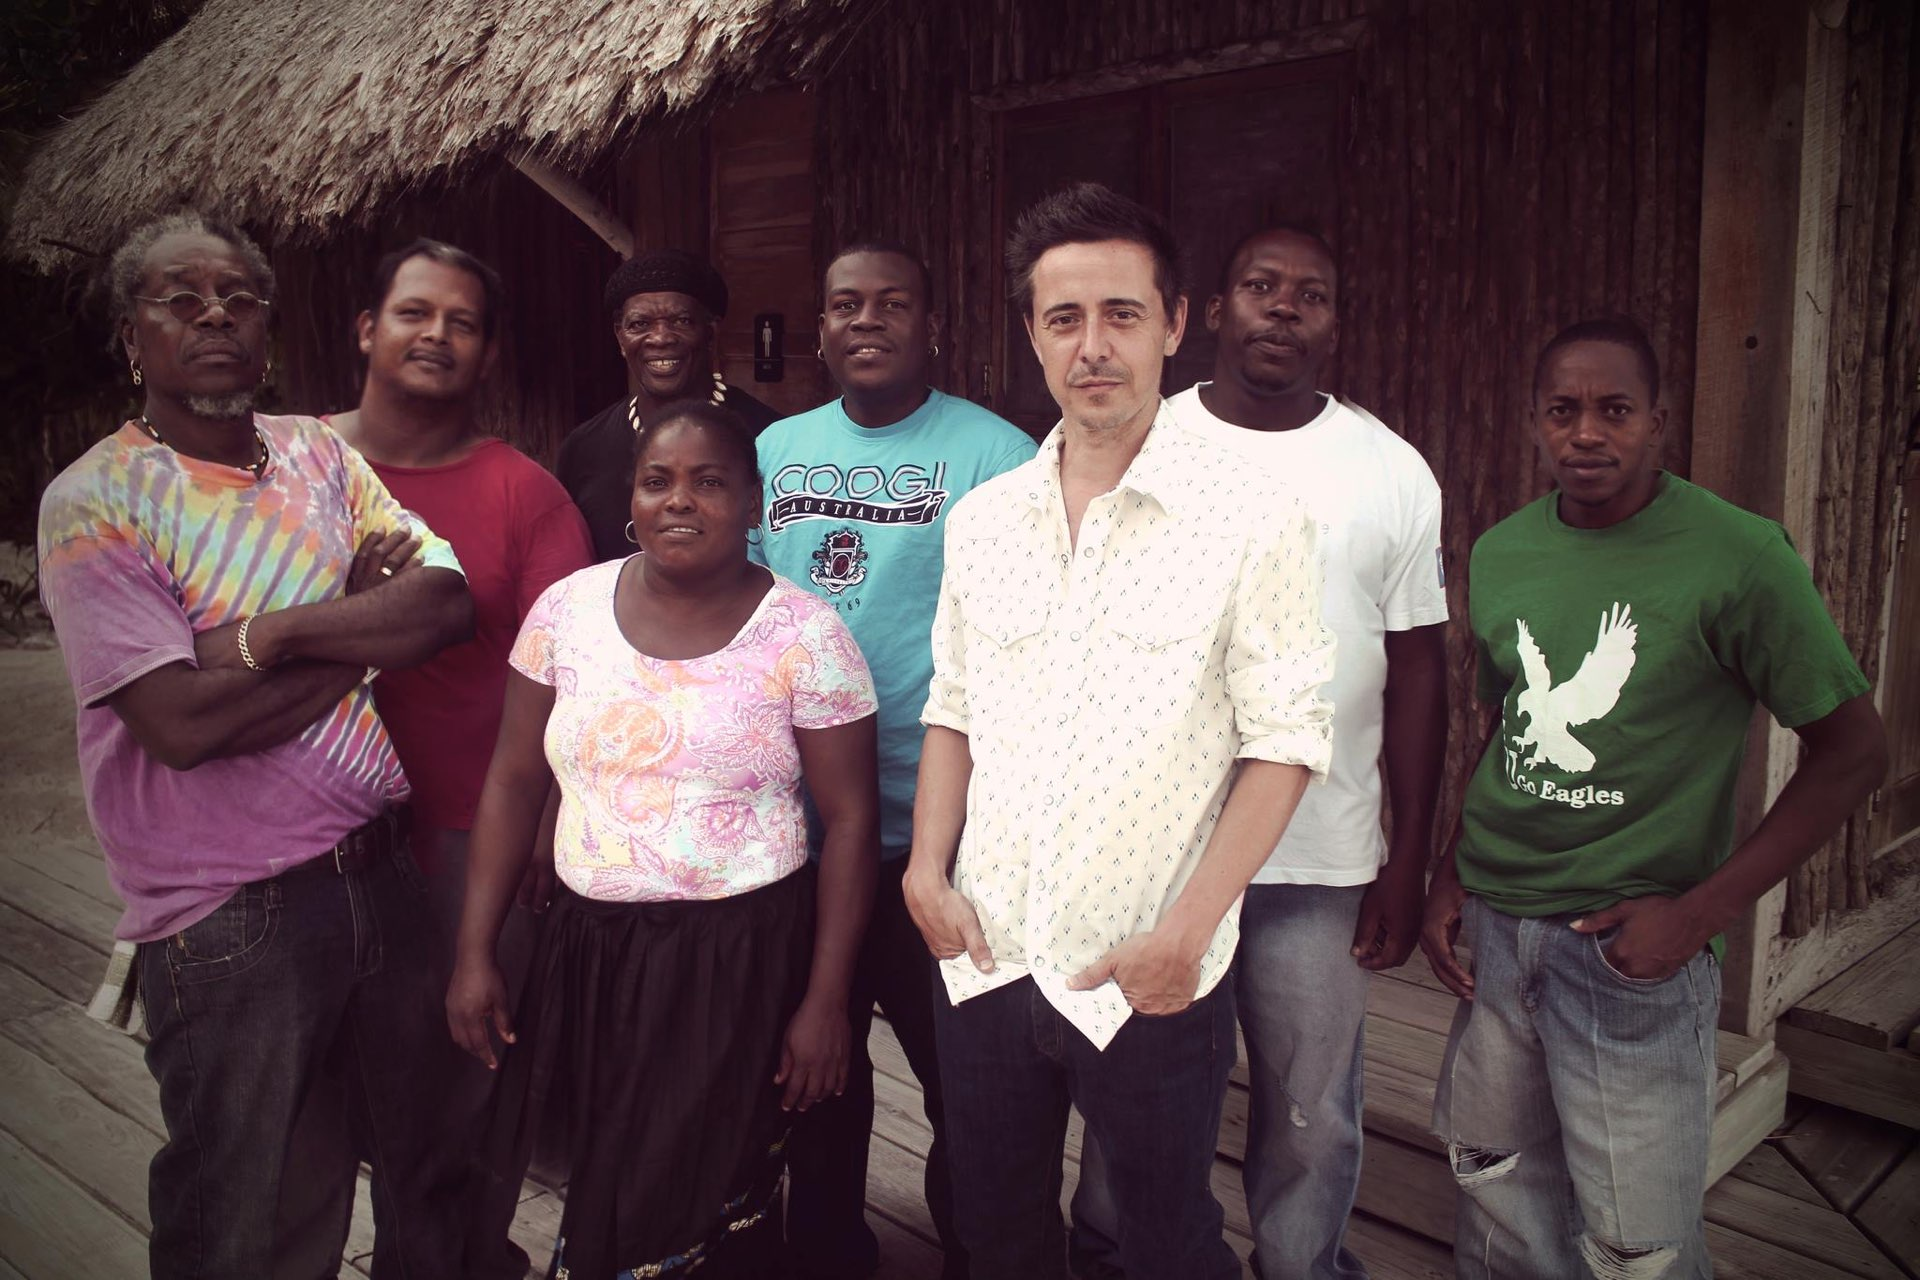 """- The Garifuna Collective of Belize ~ 15 years ago Danny's life led him down a long and winding road where he travelled to Belize, found The Garifuna Collective (a unique Afro-Amerindian cultural group) and convincing them to make an album together. That album (""""Black Birds Are Dancing Over Me"""") was quoted as """"One of the finest musical works of our time"""" By Billboard's Larry Leblanc. The album landed Danny a 3rd Juno nomination, a coveted Polaris Prize nom & a sold out summer tour of North America."""